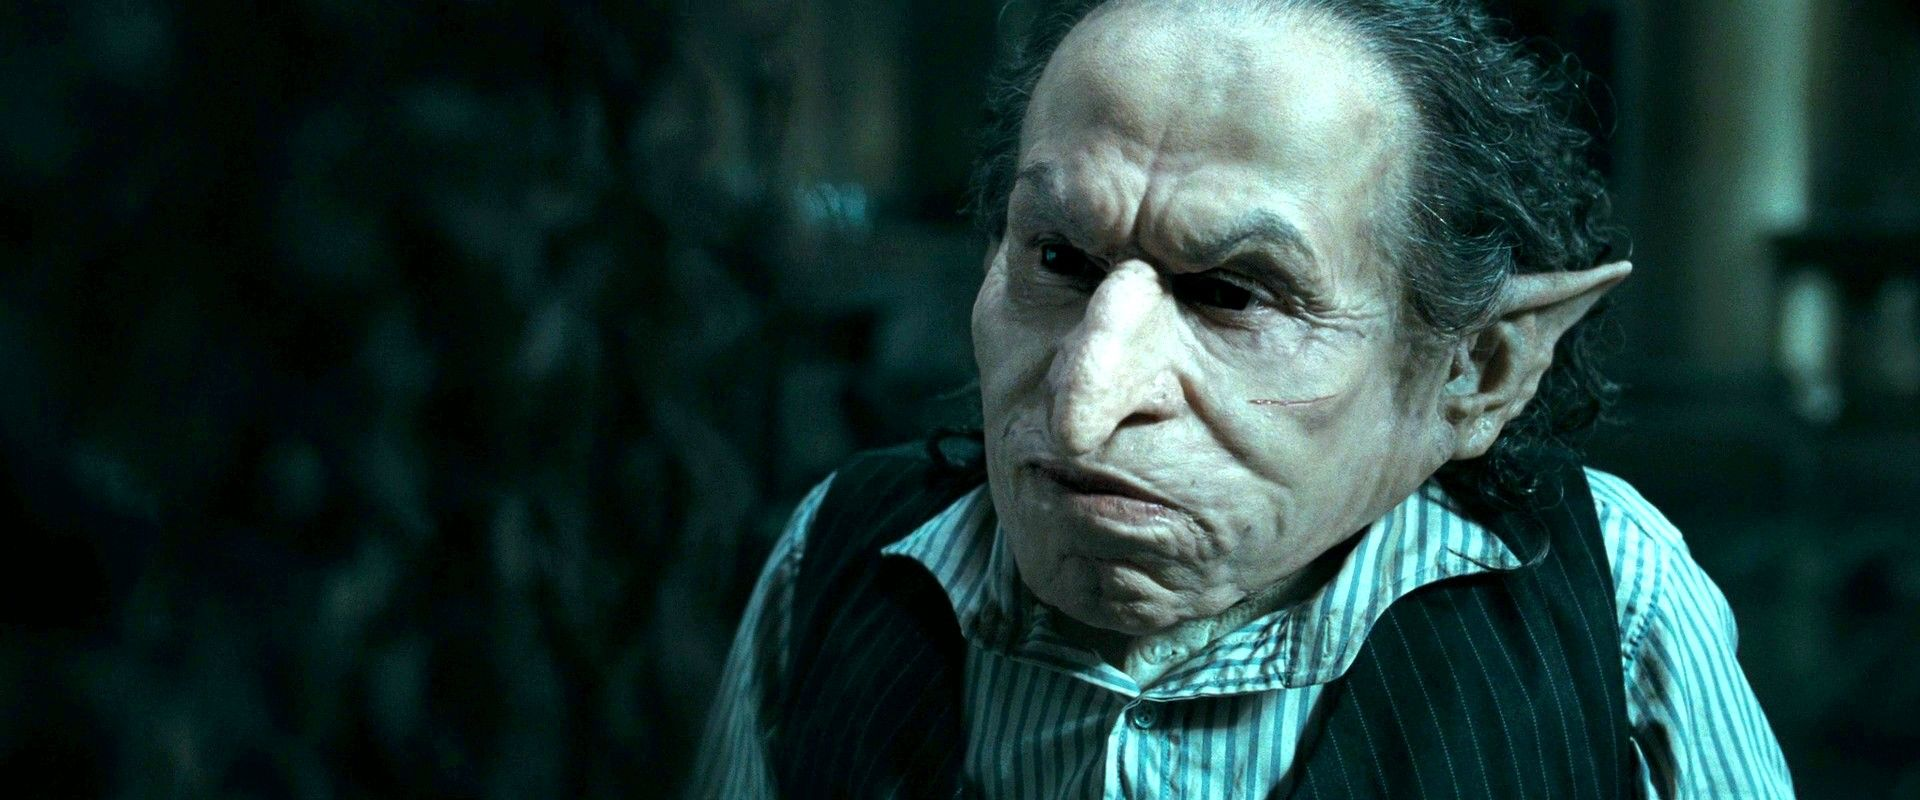 Warwick Davis Harry Potter And The Deathly Hallows Part 1 2010 Jpg 1920 800 Warwick Davis Warwick Davis Harry Potter Deathly Hallows Part 1